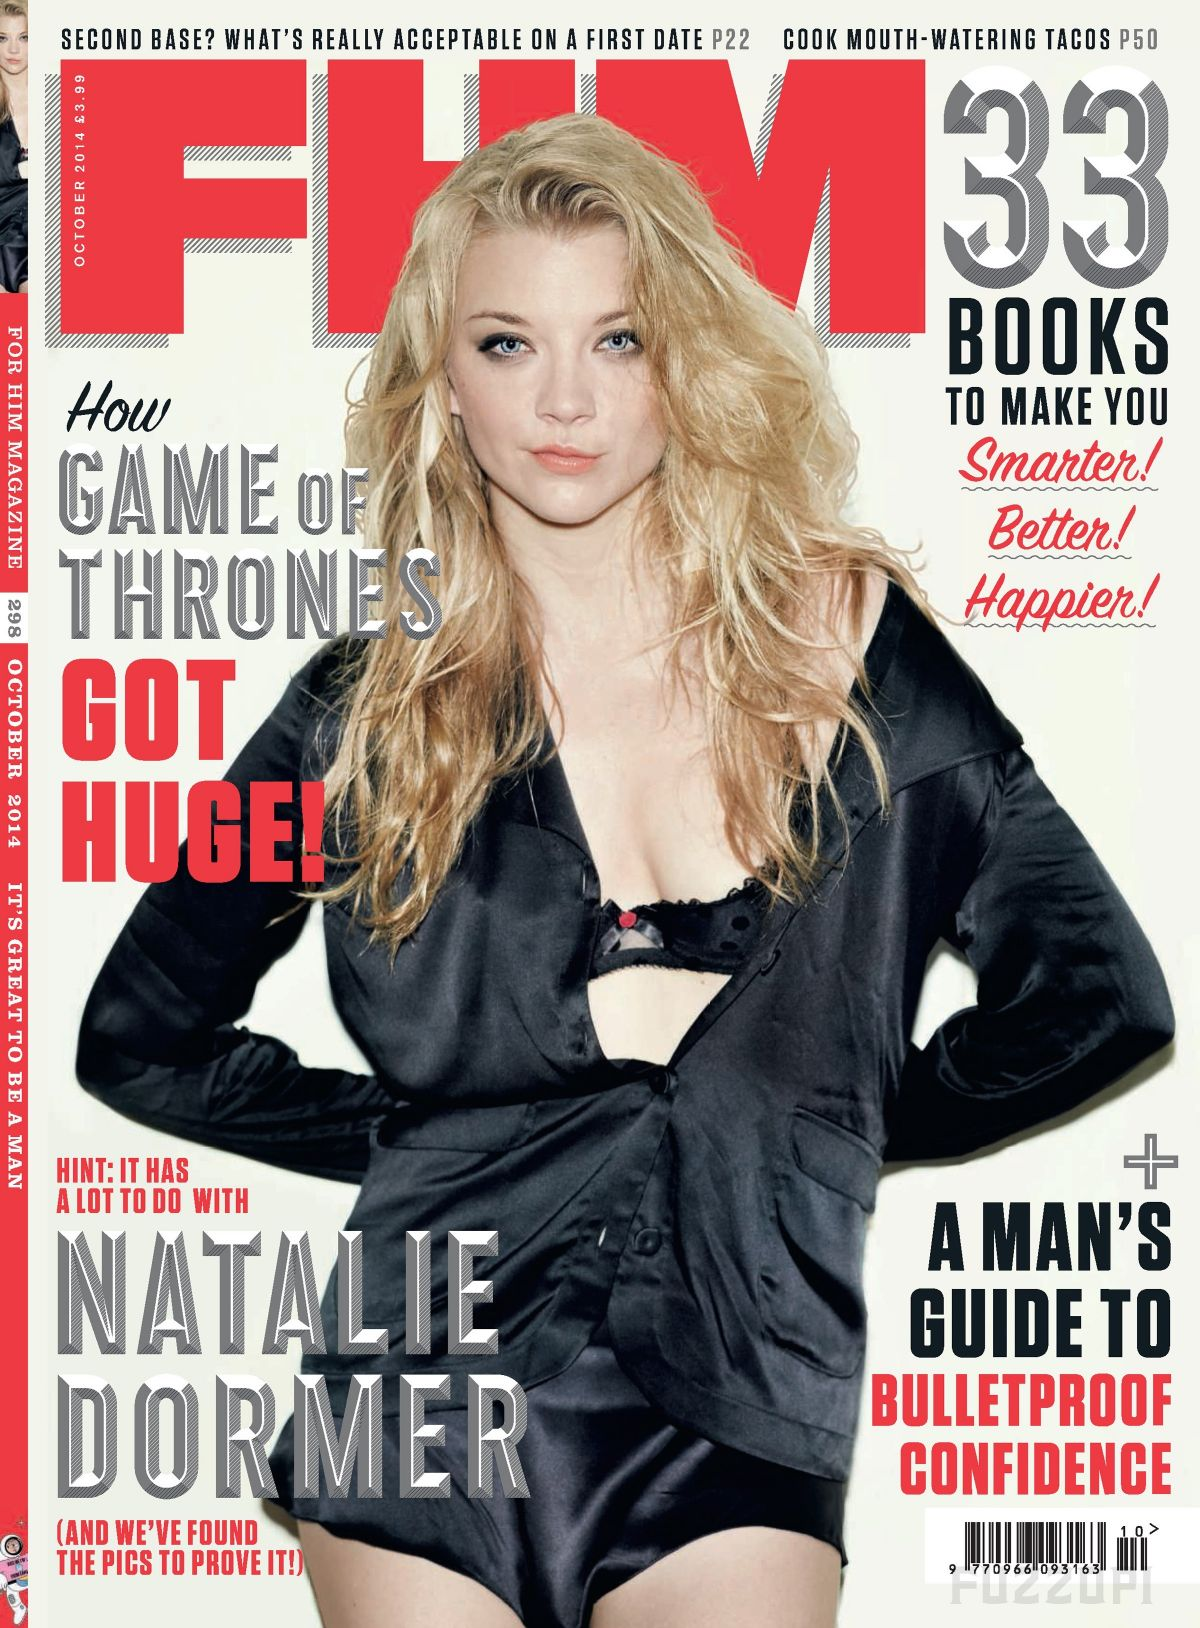 NATALIE DORMER in FHM Magazine, October 2014 Issue